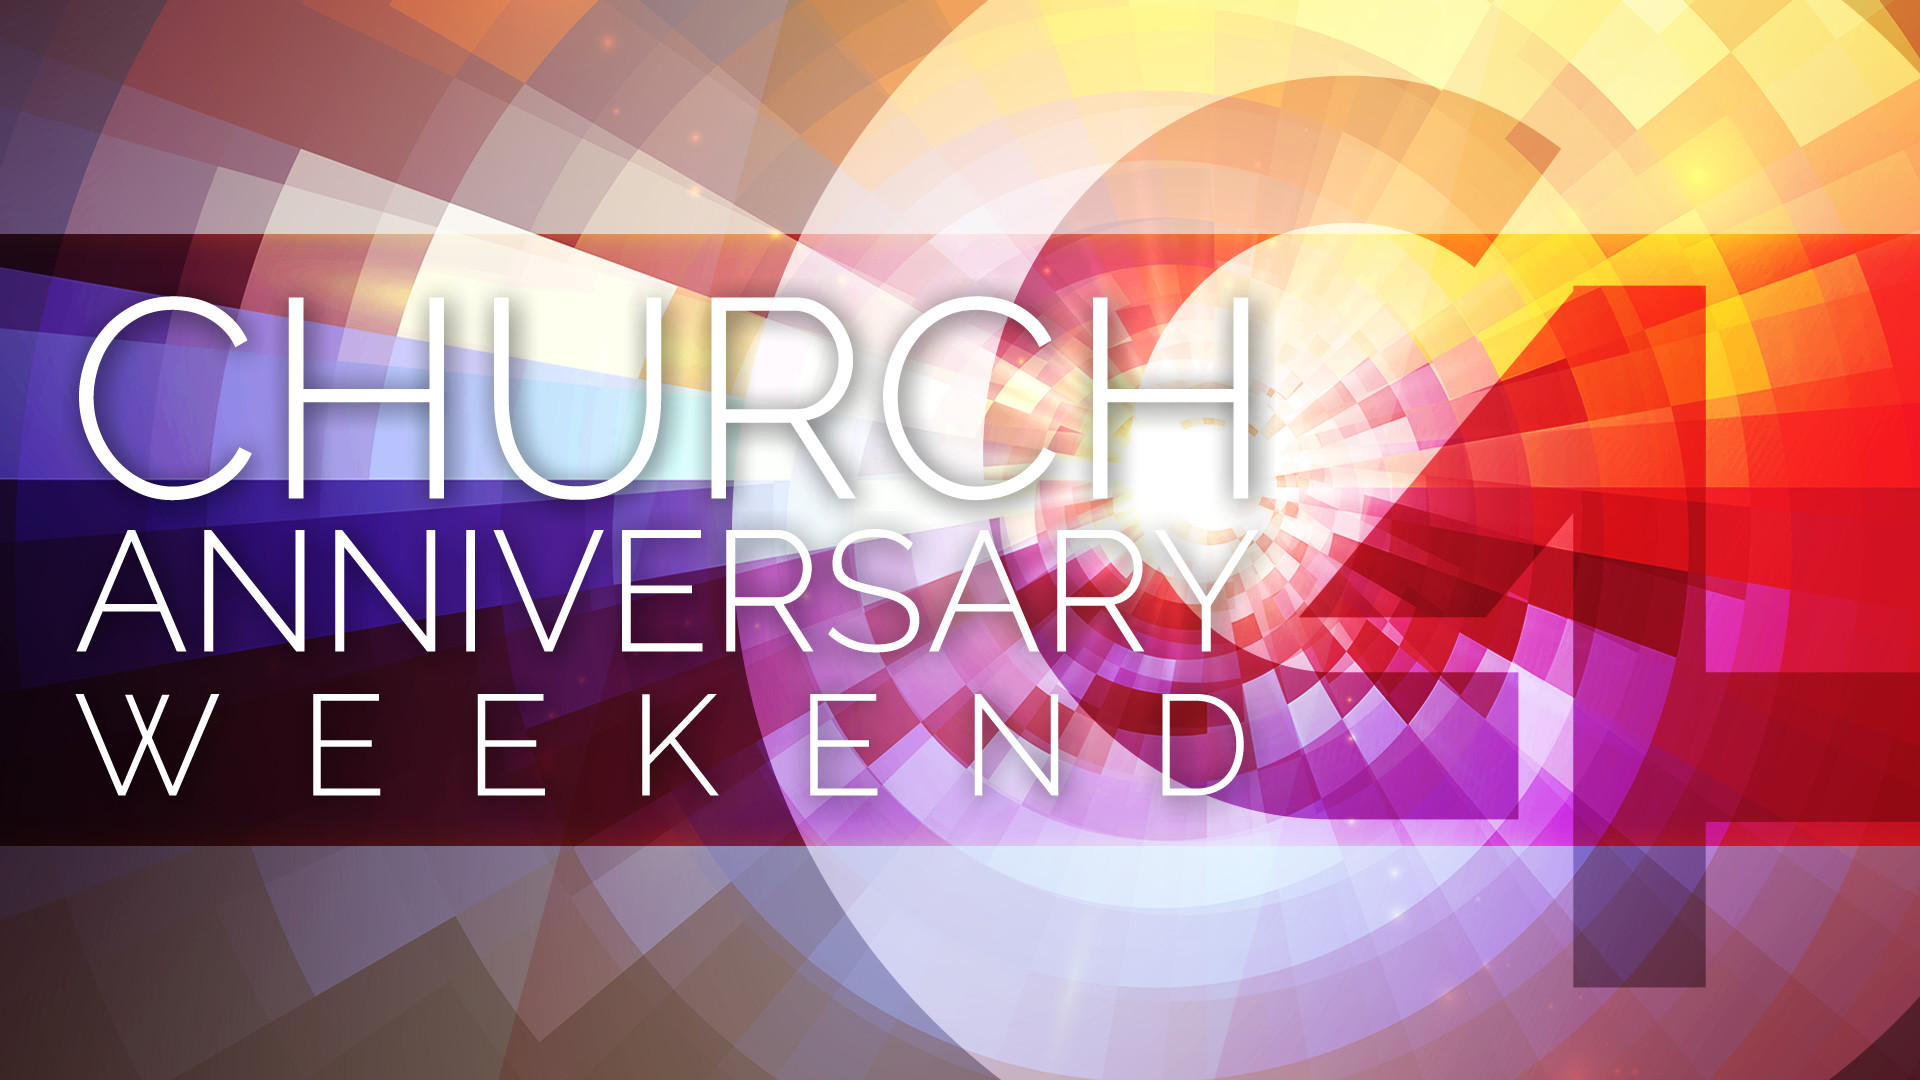 Church Anniversary Wallpaper (62+ Images